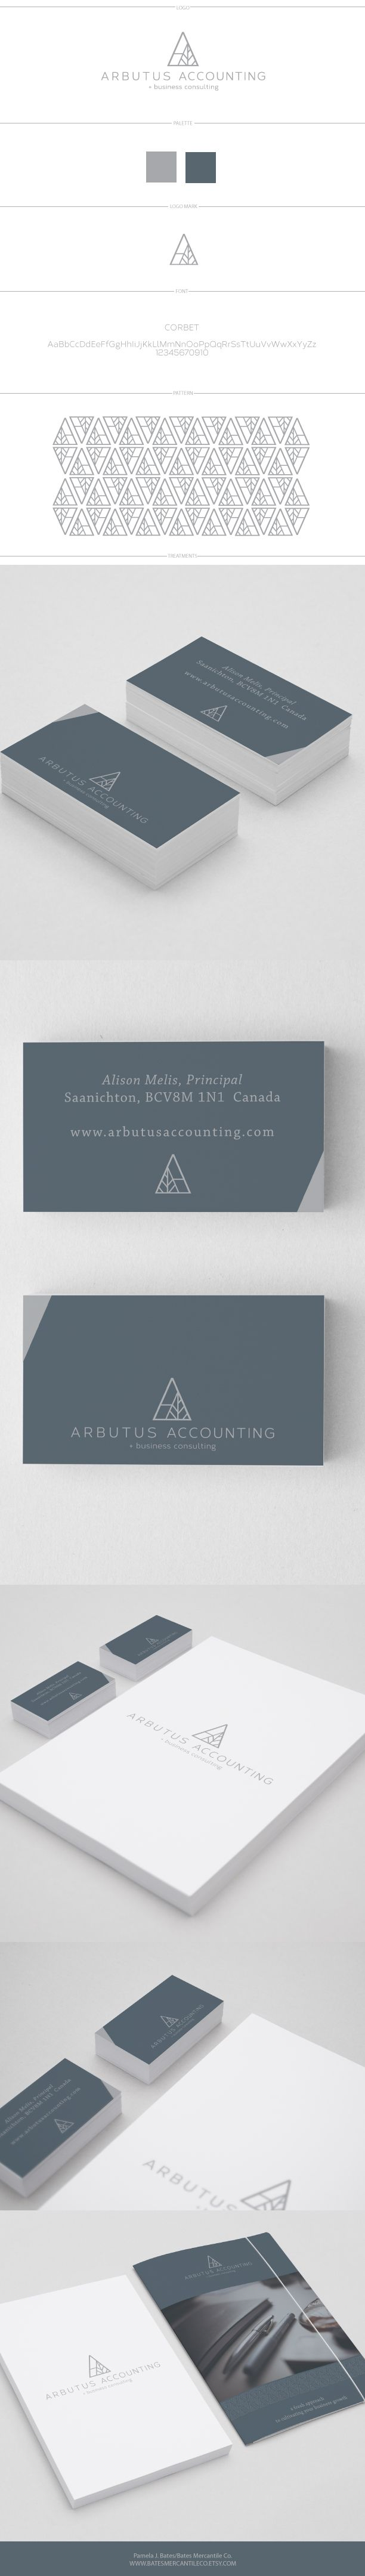 logo design for Arbutus Accounting by Pamela J. Bates, Bates Mercantile Co. #logo #logo design #graphic design #branding #branding design #collateral #accounting logo #business logo